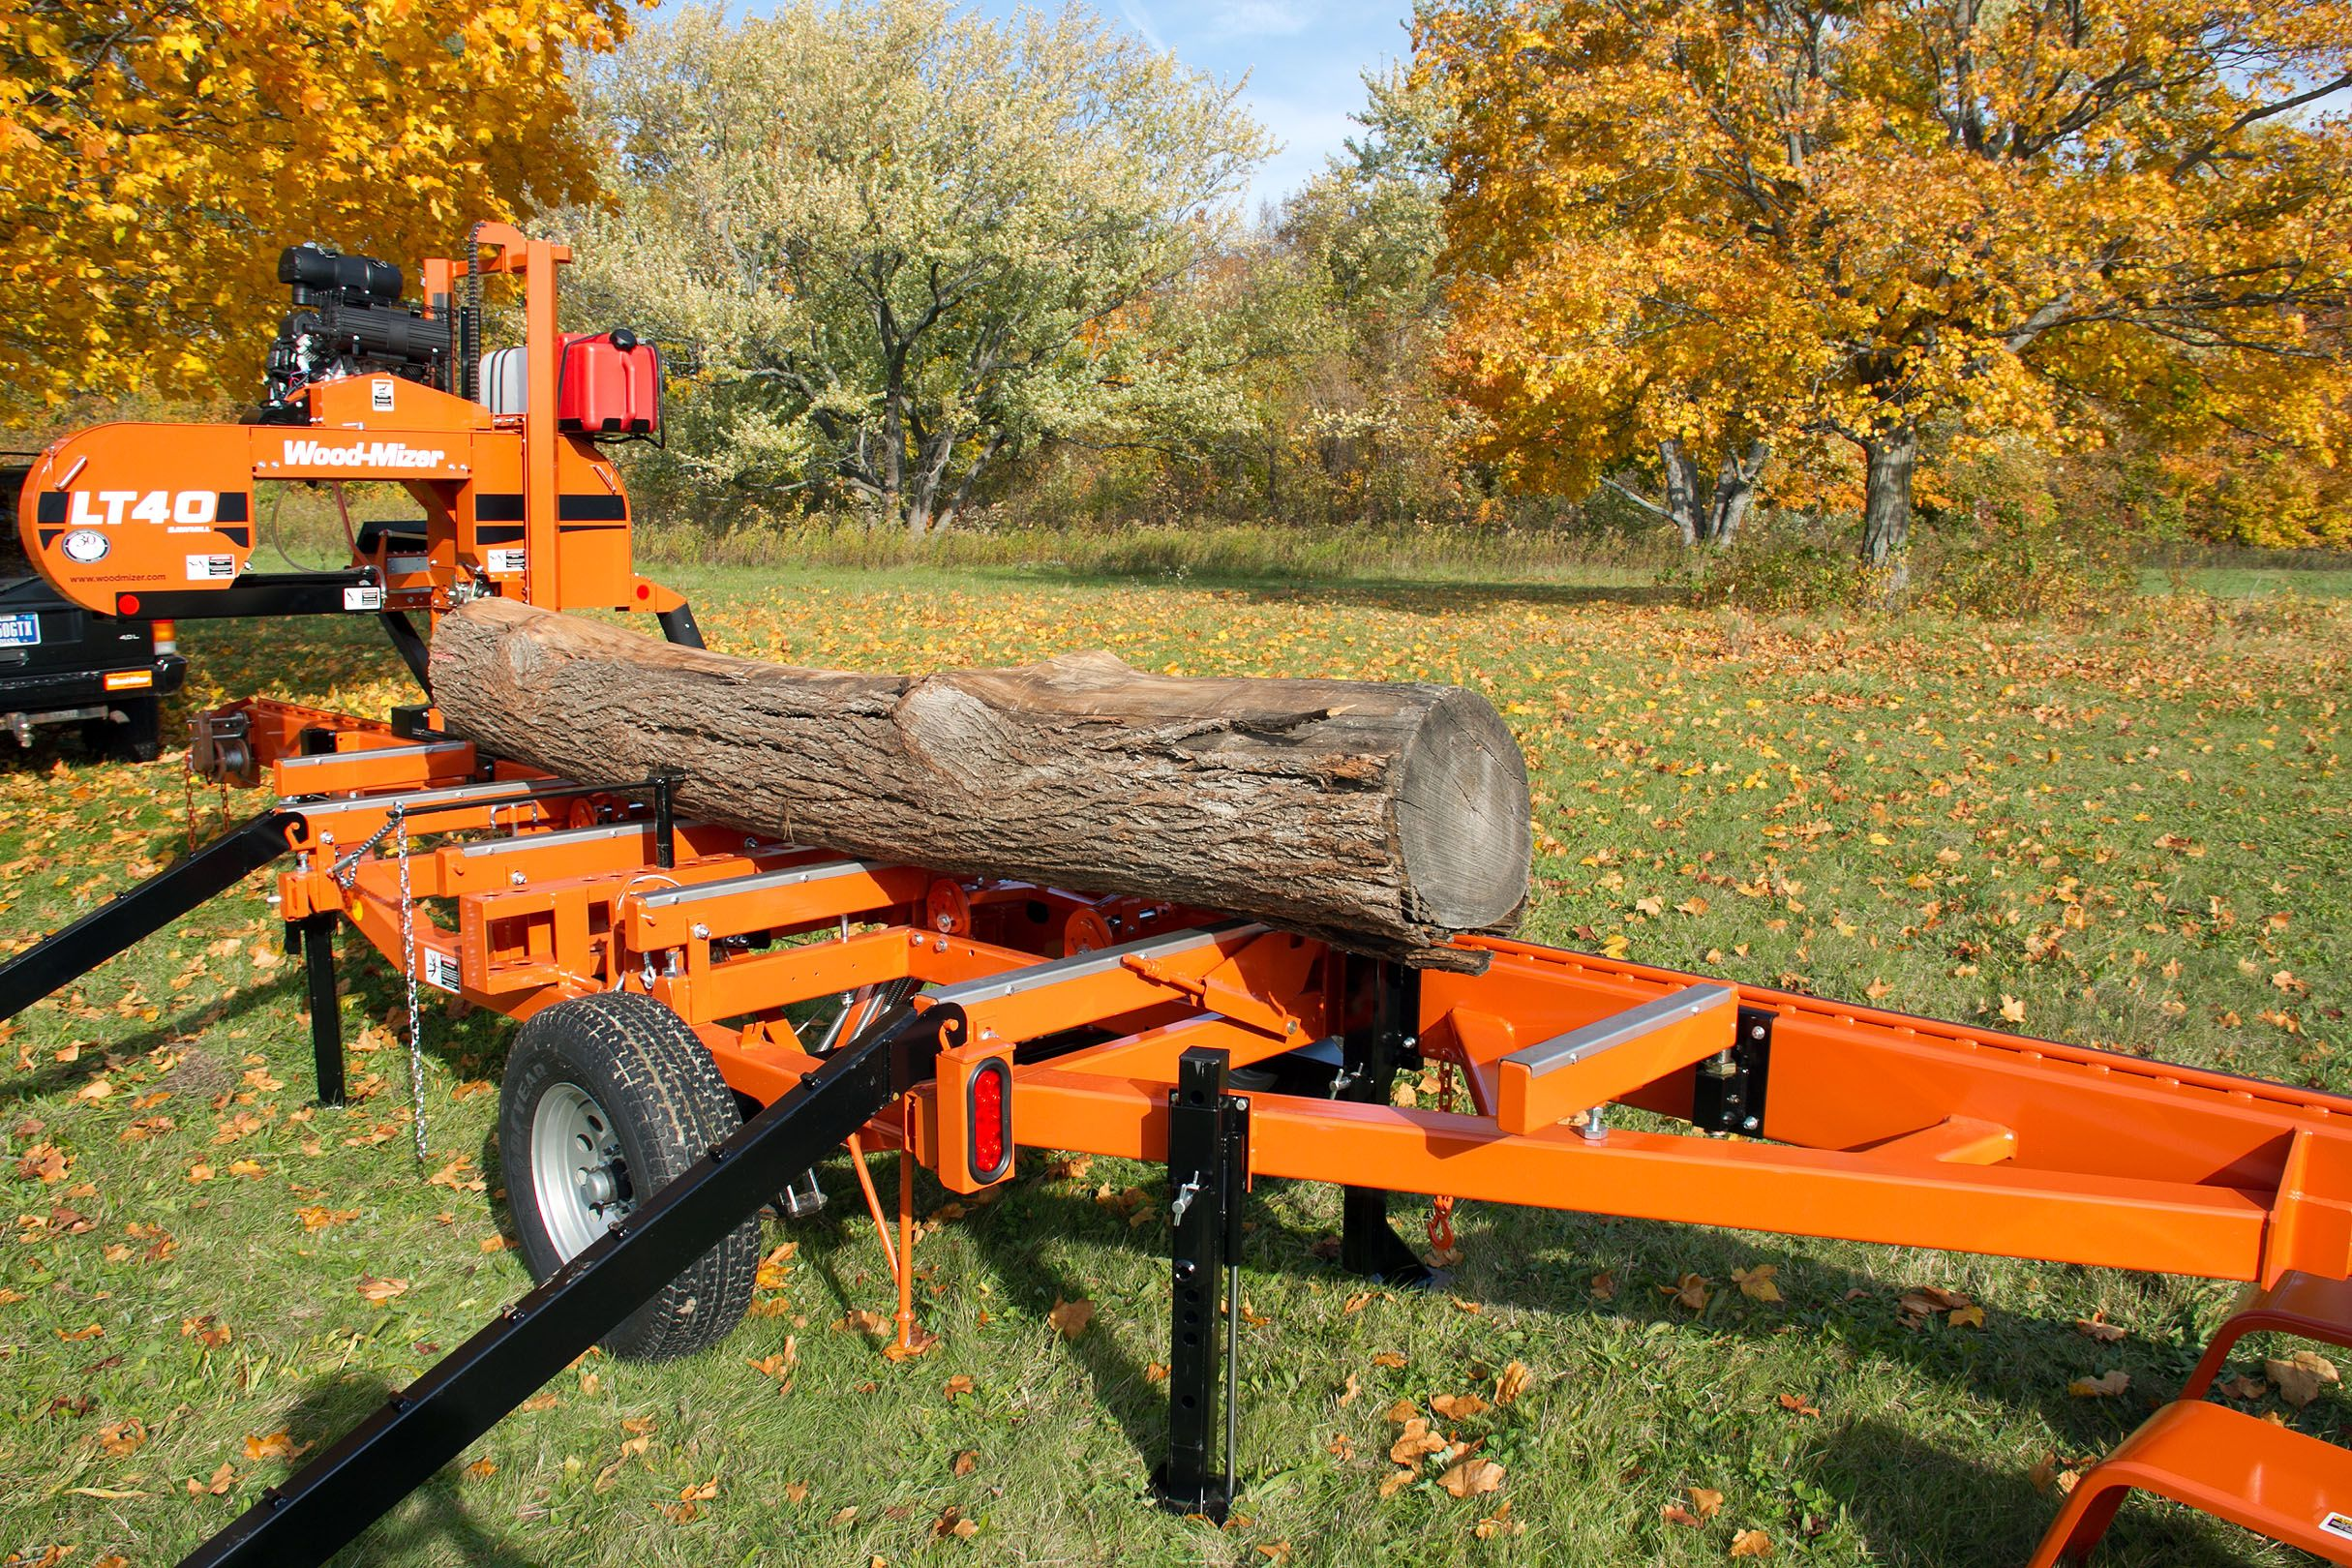 lt40 manual saw for projects or profits wood mizer portable